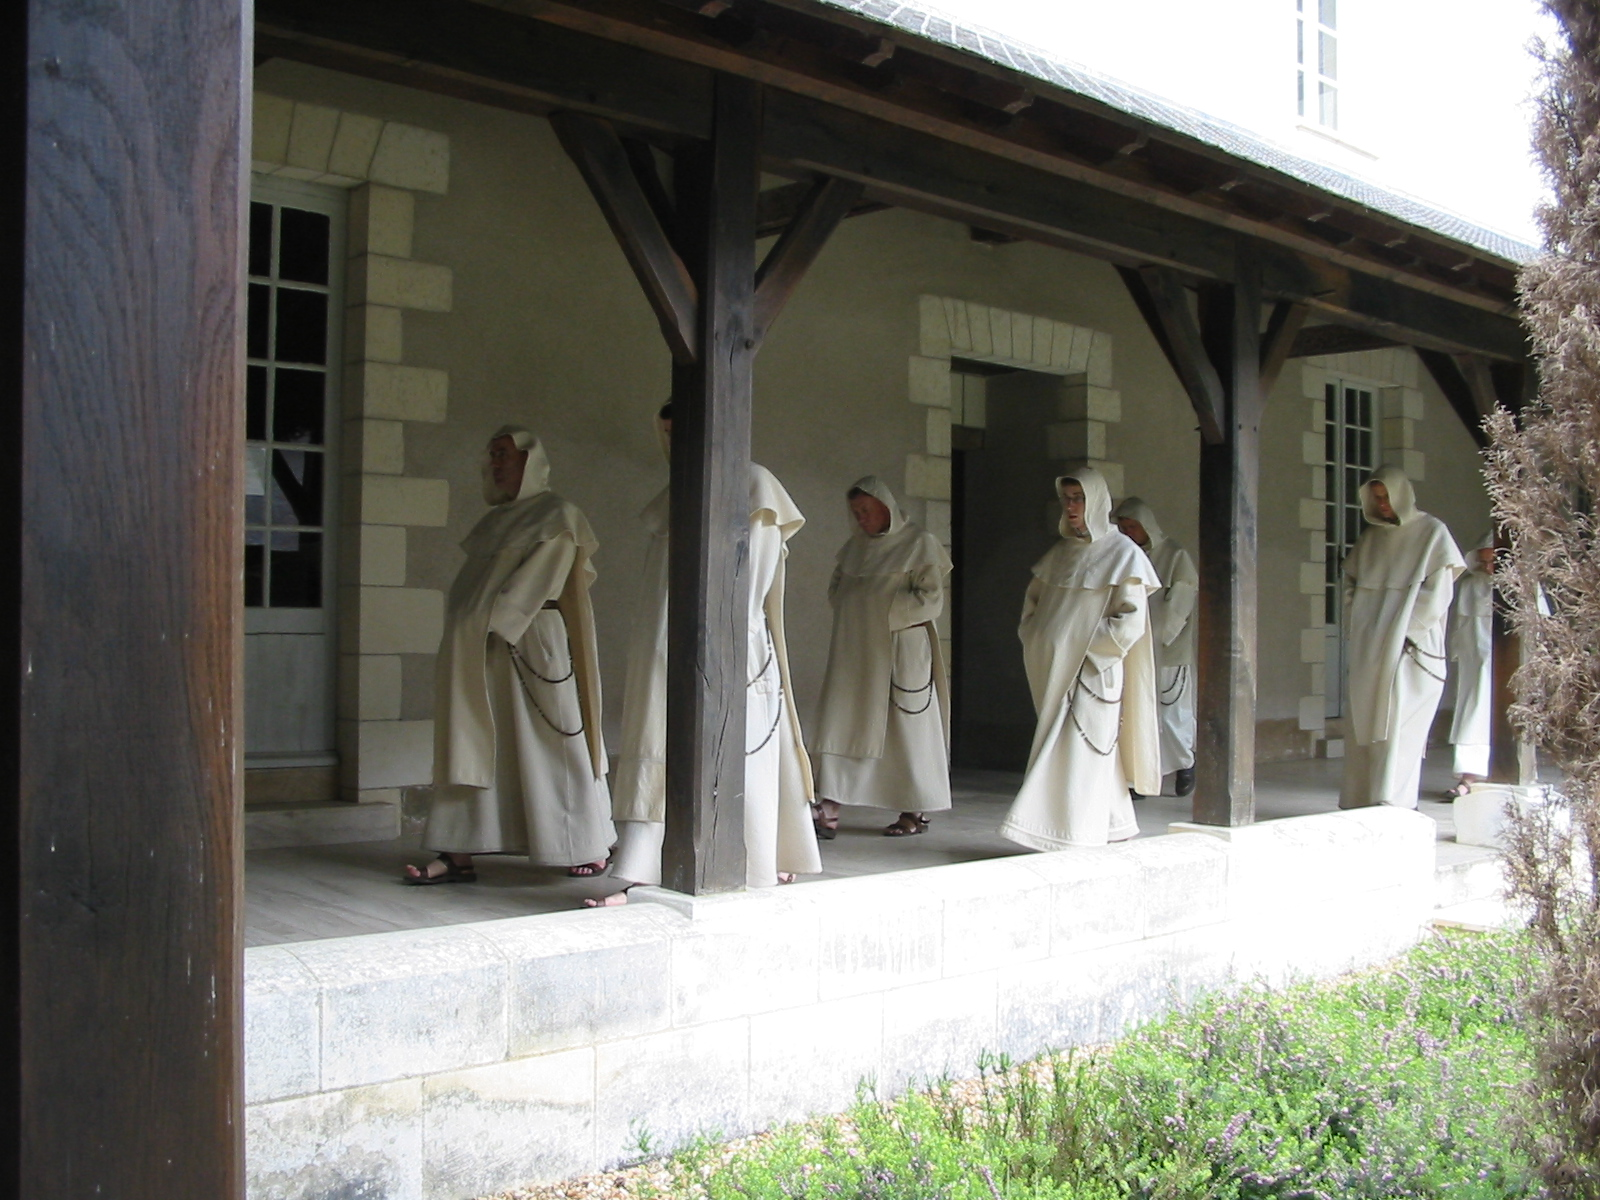 Procession in the cloister